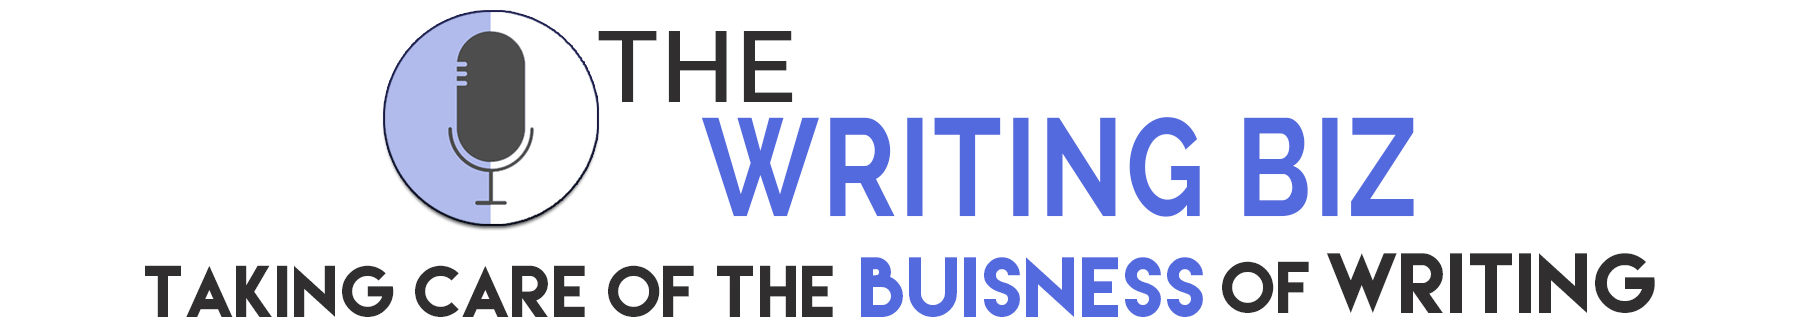 The Writing Biz